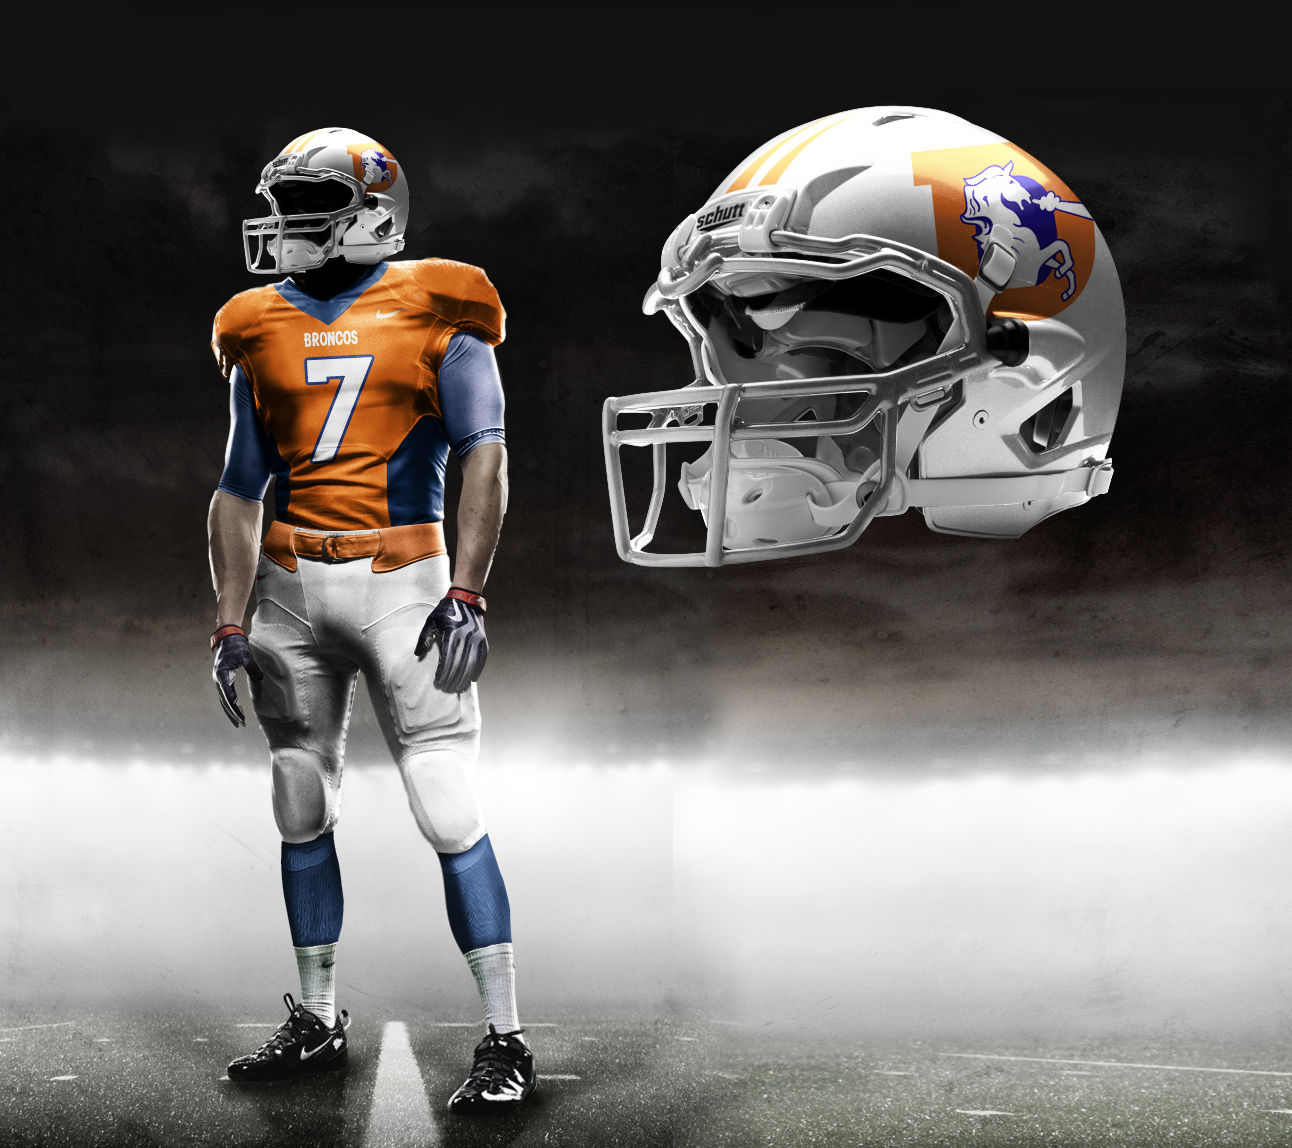 c028f096f4fc Nike Pro Combat NFL Uniforms  Check Out Fake Unis That Tricked Fans ...